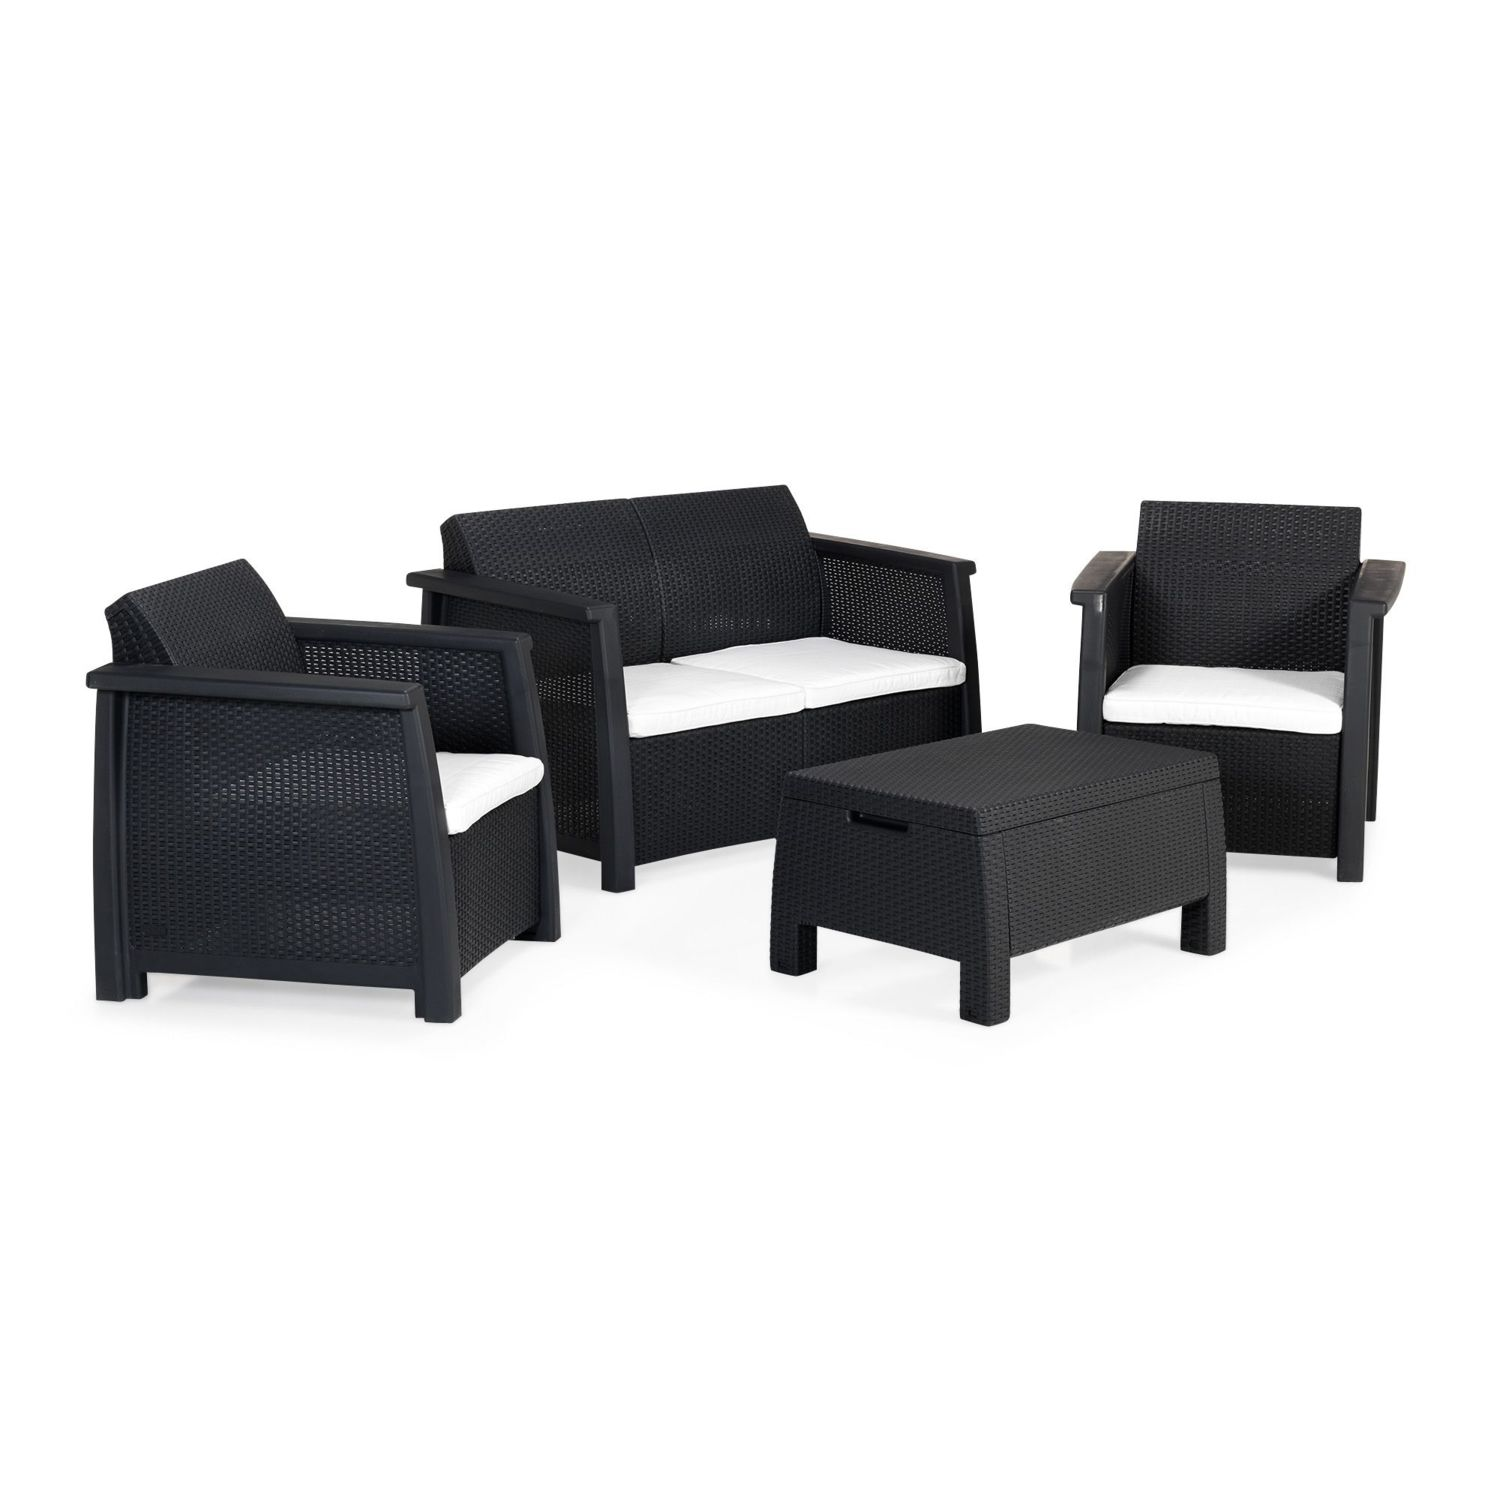 interesting gallery of fauteuil en rotin alinea good chaise de bureau alinea ce fauteuil with. Black Bedroom Furniture Sets. Home Design Ideas